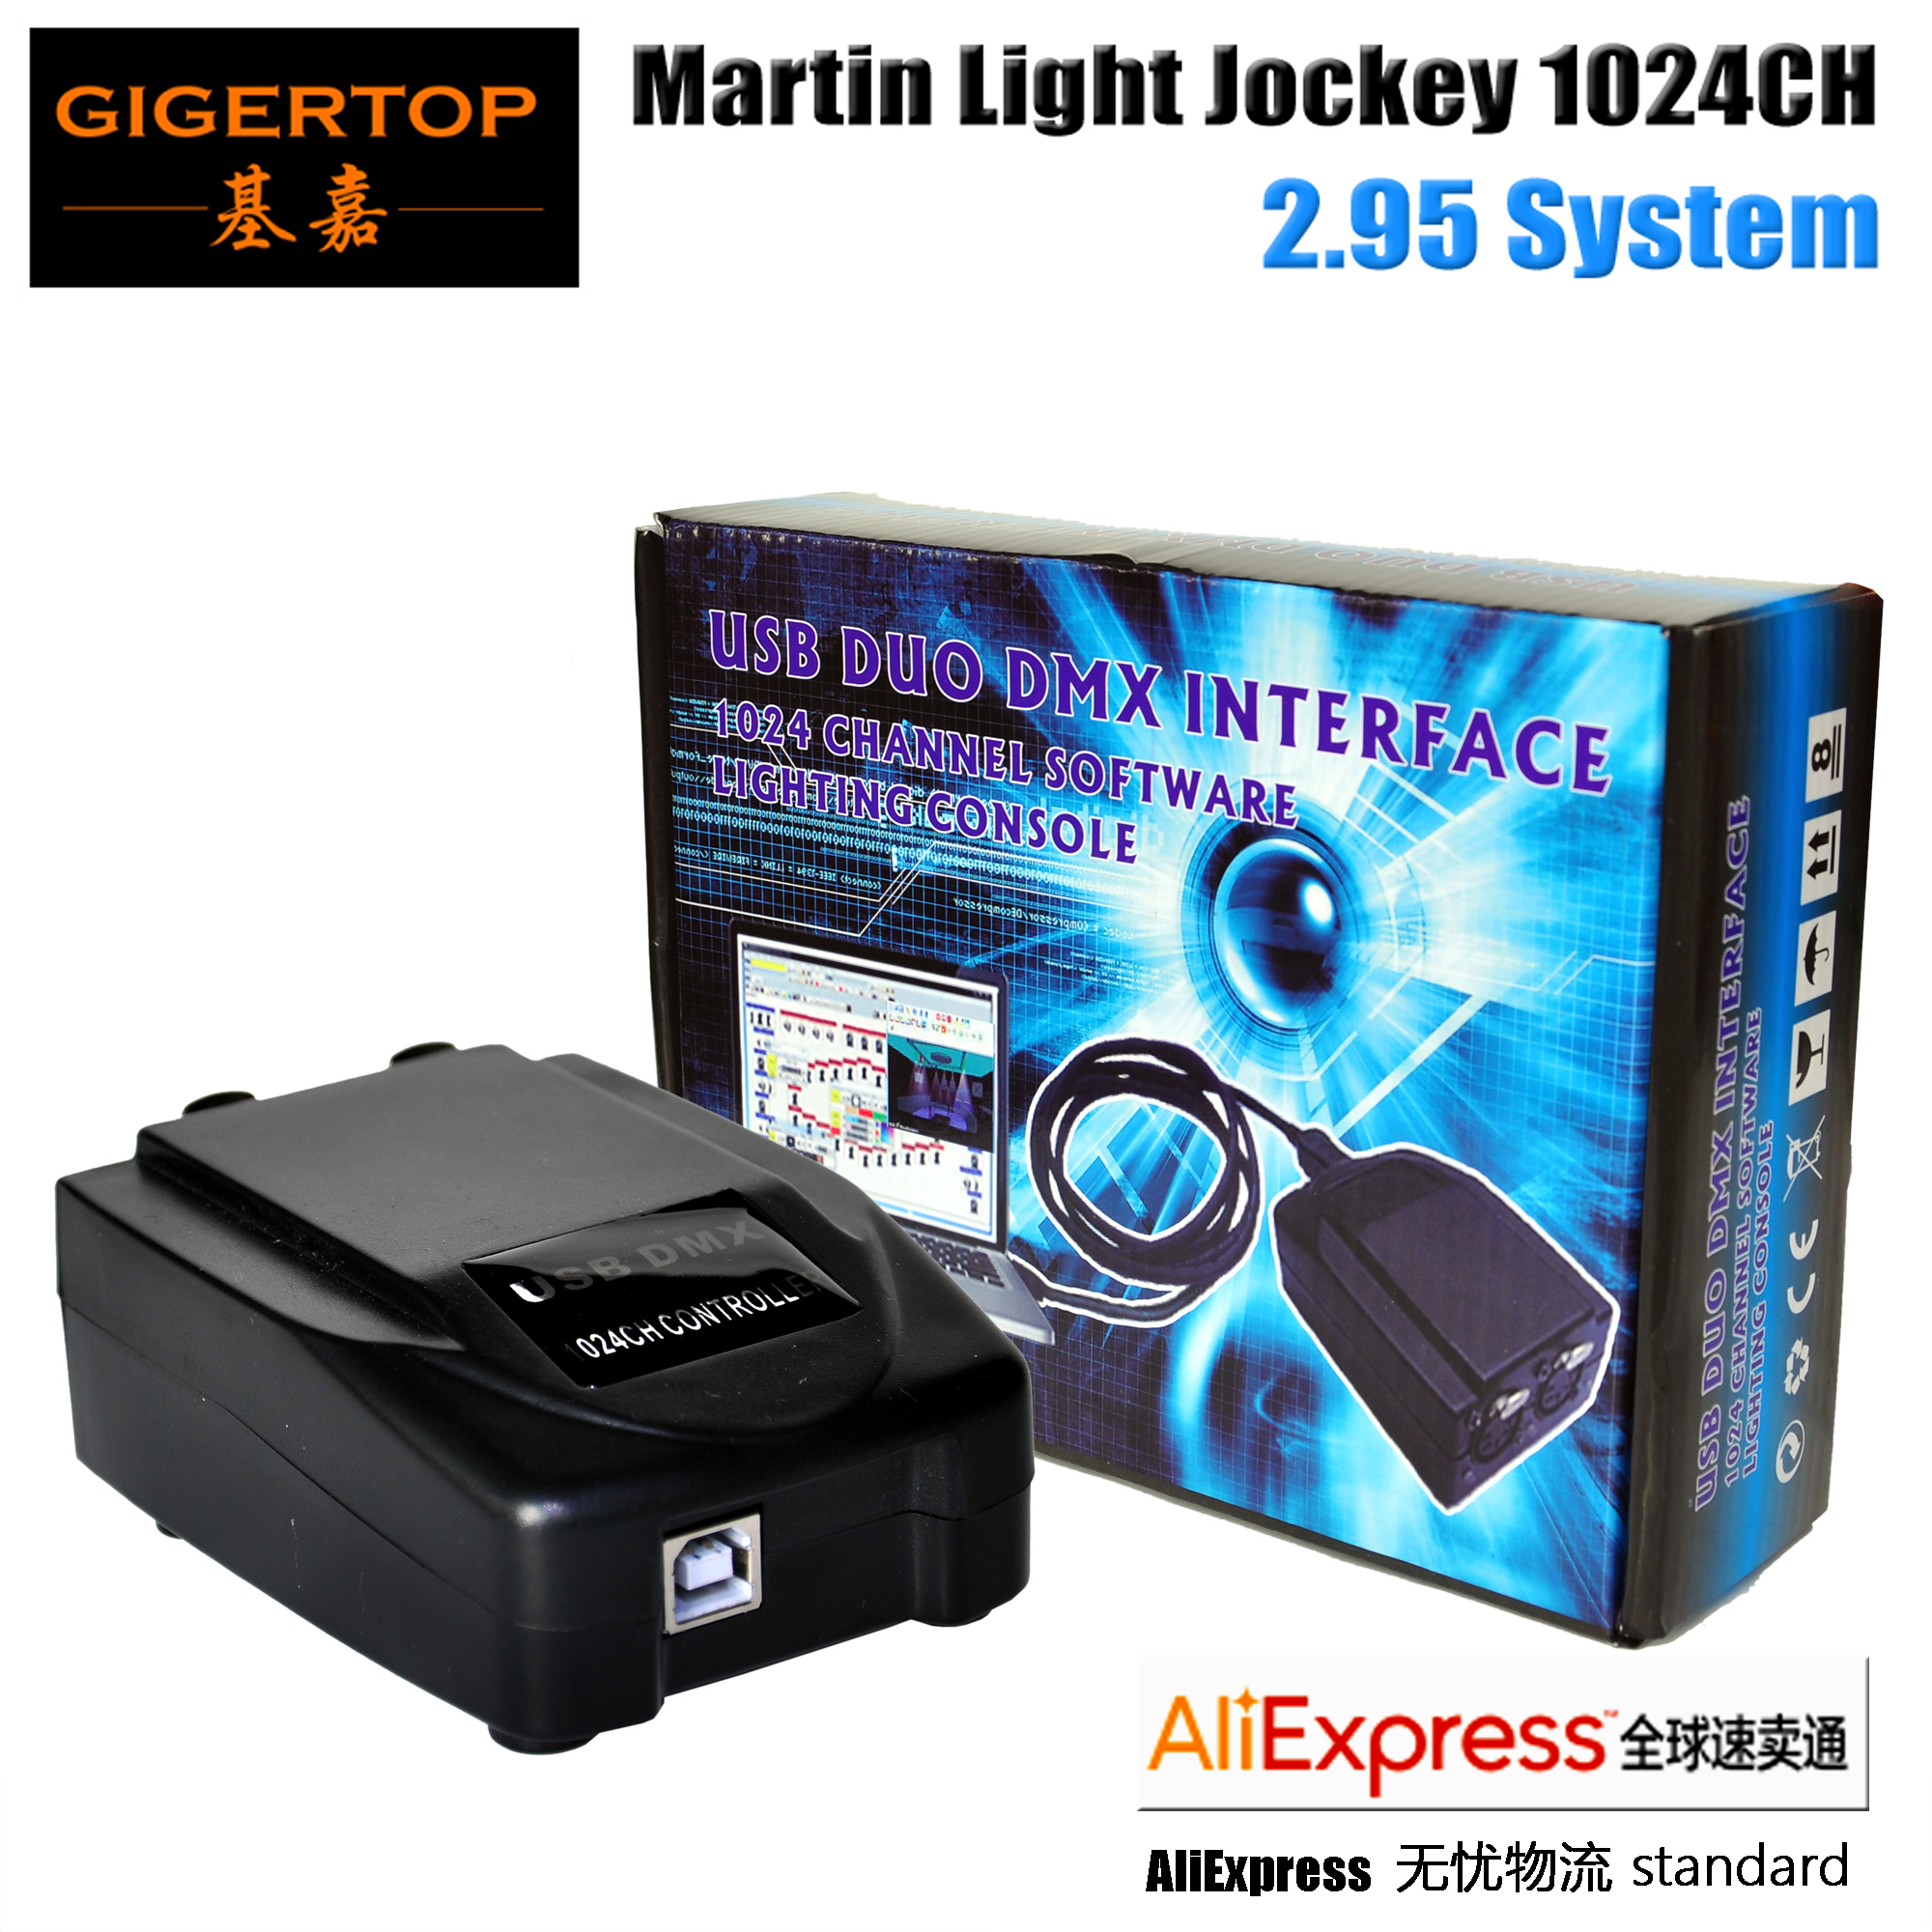 <font><b>Aliexpress</b></font> Martin Light Jockey USB 2.95 DMX Interface 1024 Channel Software Lighting Console USB-DMX PC 3D Lighting Effect Live image